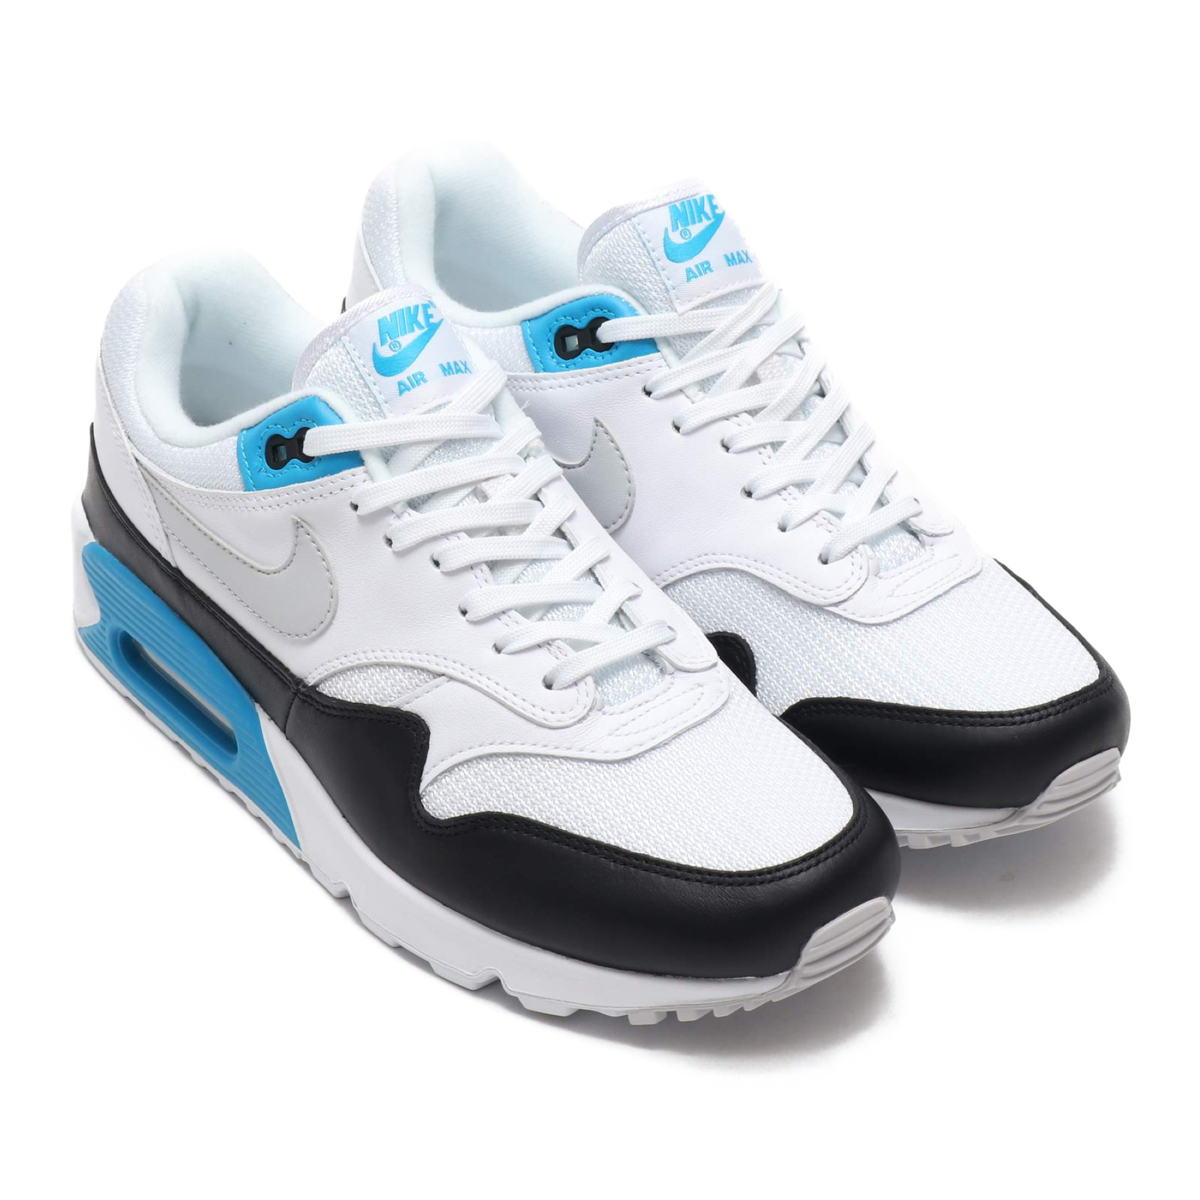 NIKE AIR MAX 90/1 (ナイキ エア マックス 90 1) (WHITE/NEUTRAL GREY-BLACK-LASER BLUE)18FA-S